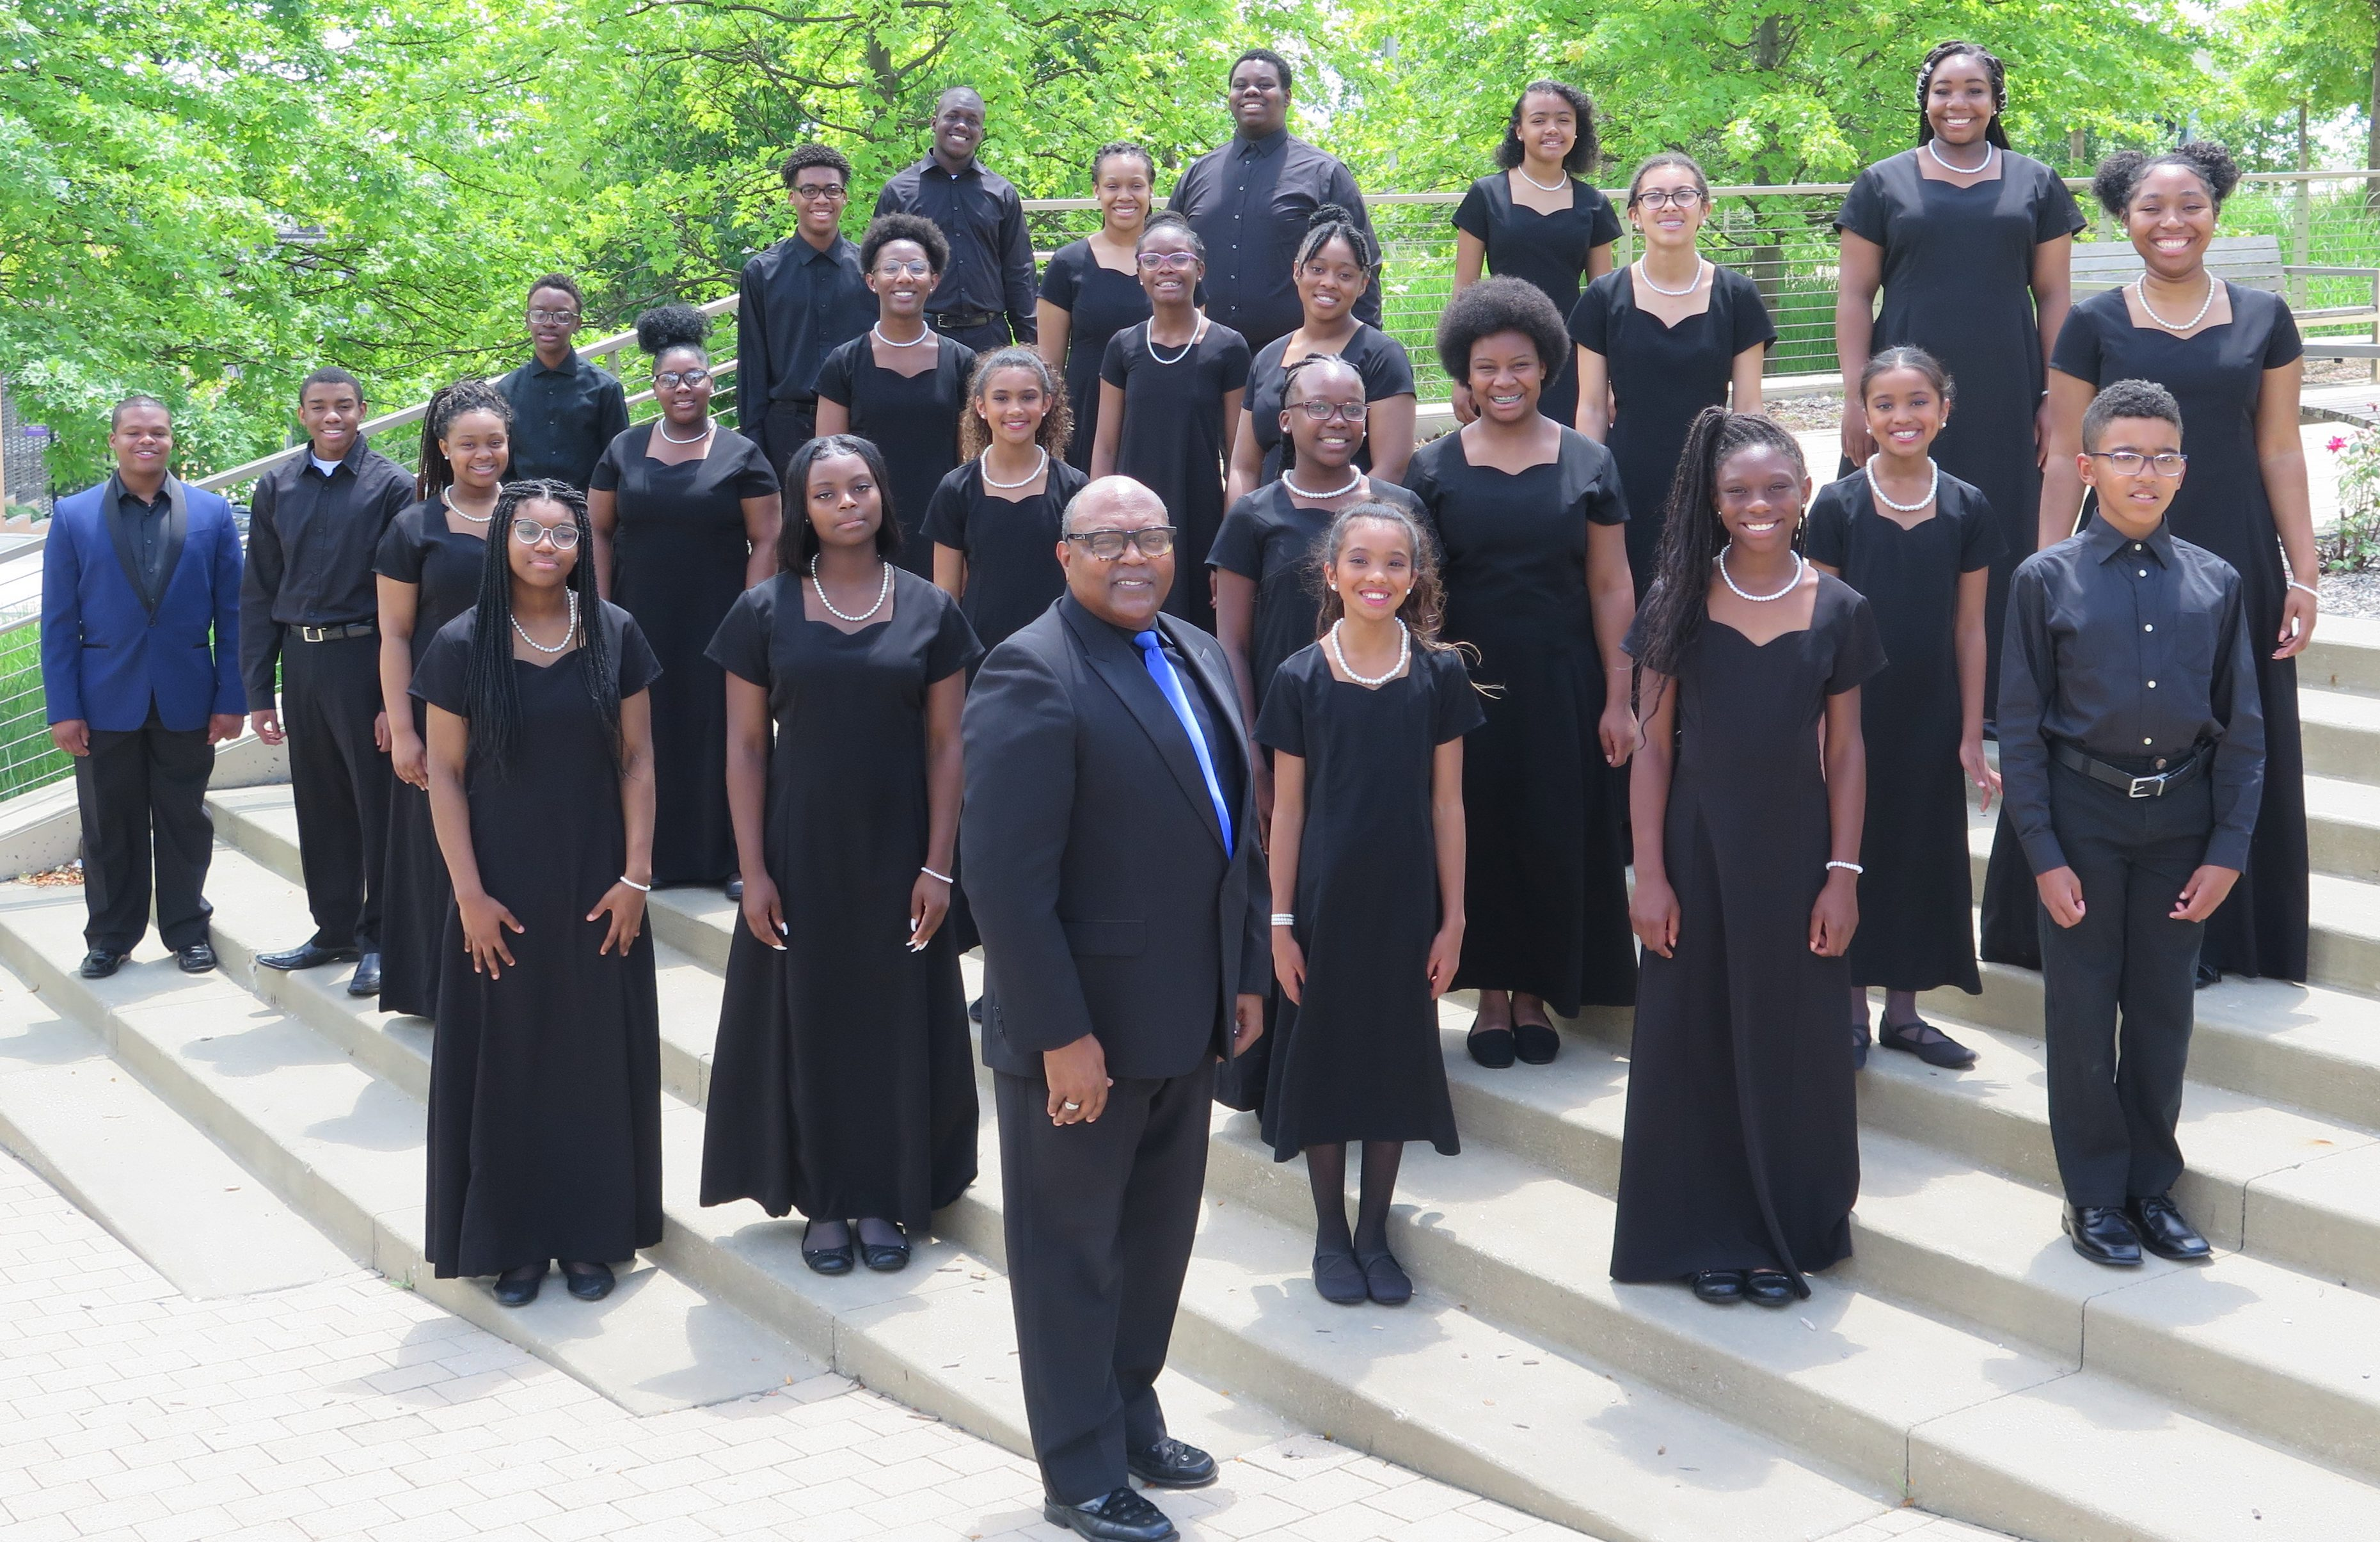 SING, DANCE, REJOICE: Choir with ambitious goals celebrates 25 years of success